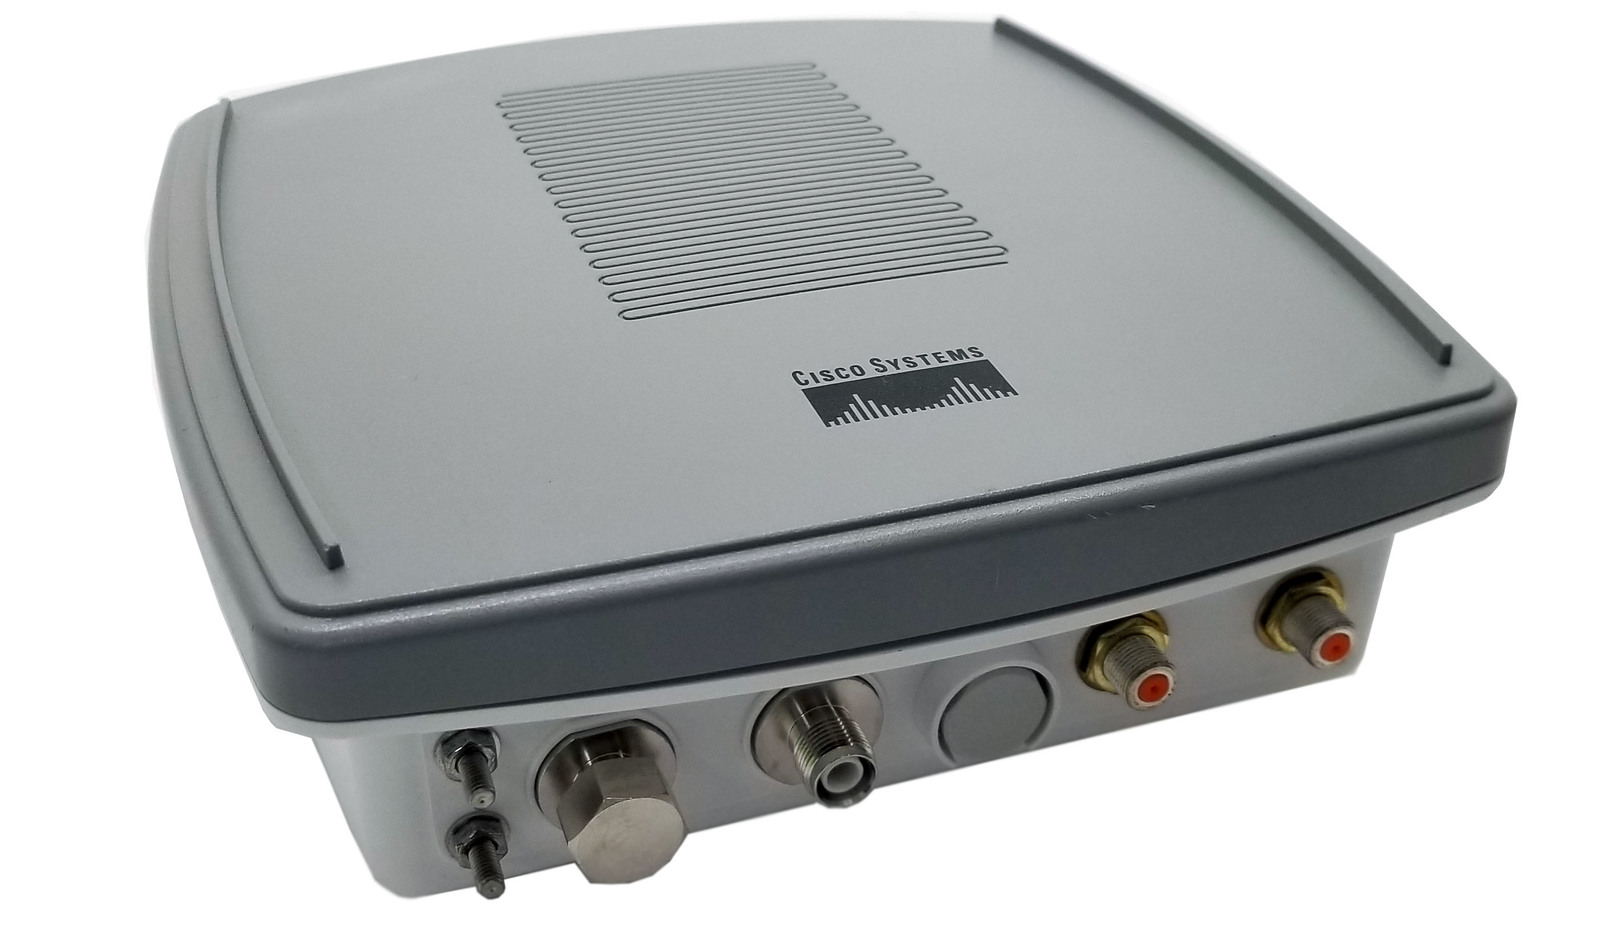 Cisco AIR-BR1310G-A-K9-R Outdoor Wireless Bridge Access Point And Power Injector